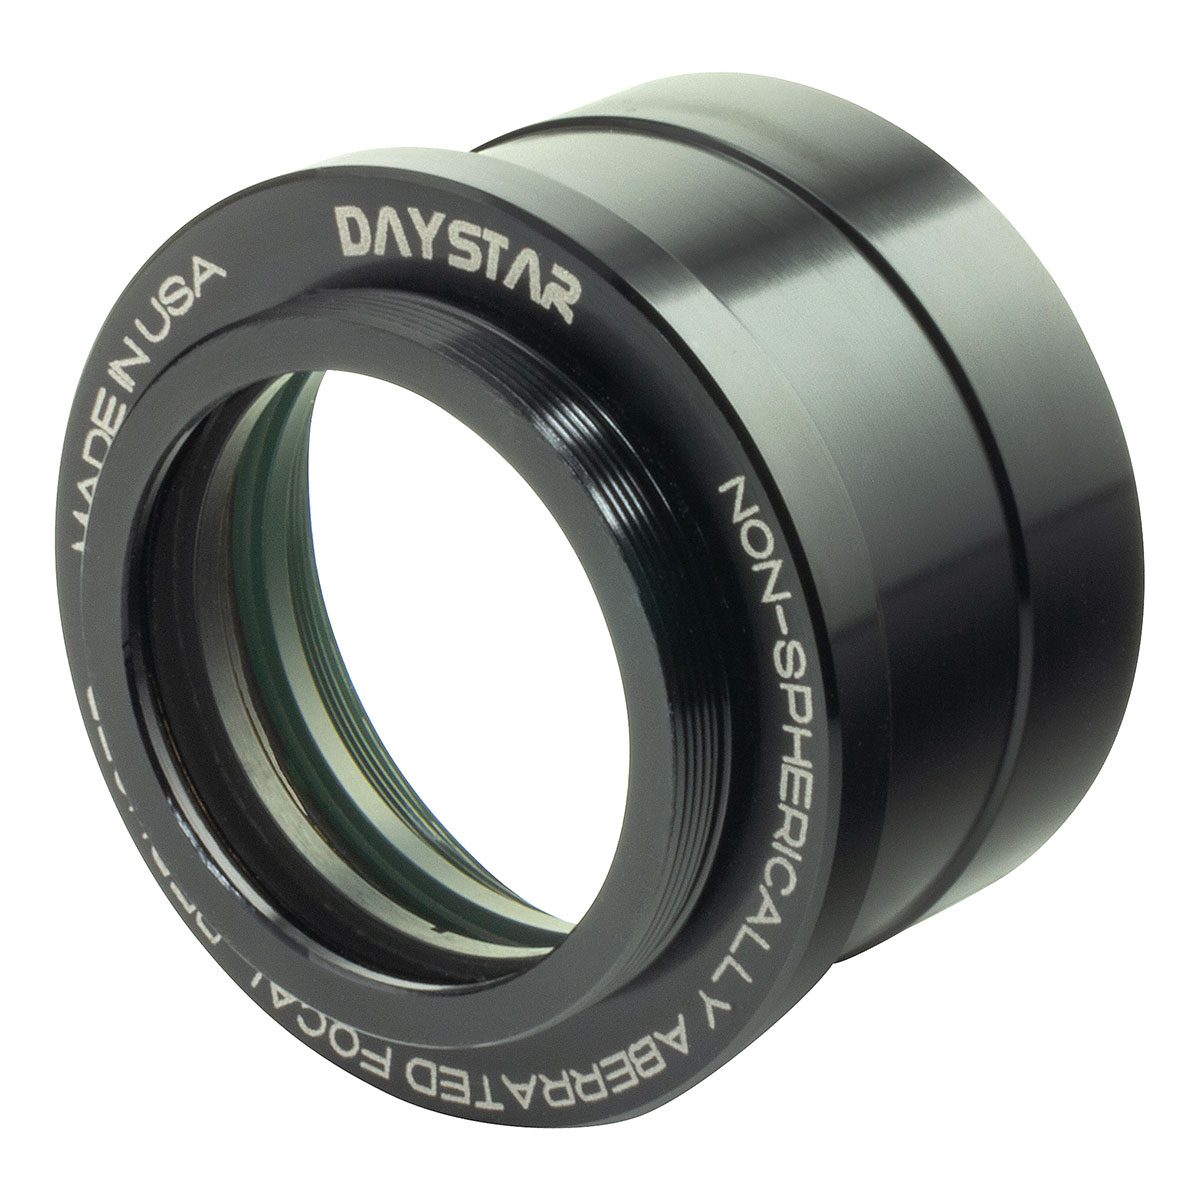 DayStar 0.5x Imaging Focal Reducer